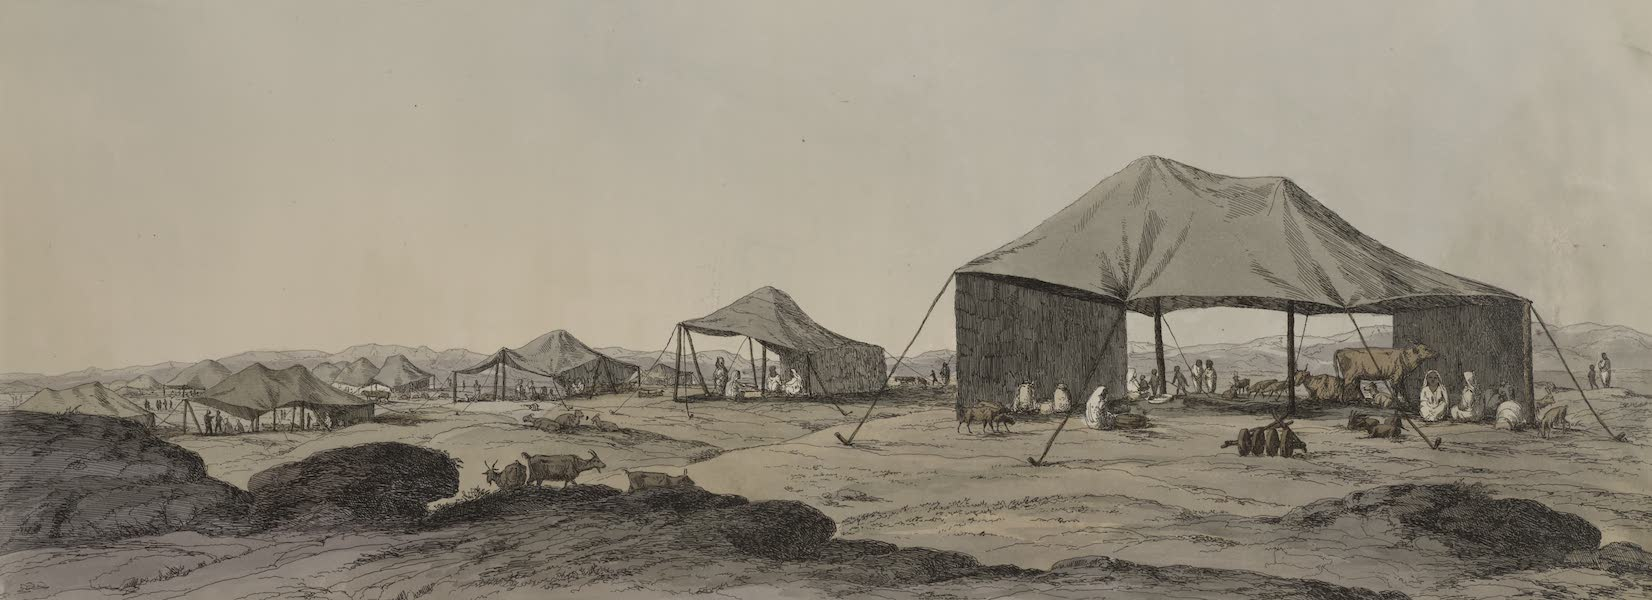 Plates Illustrative of the Researches and Operations of G. Belzoni - Bedouins camp (1820)